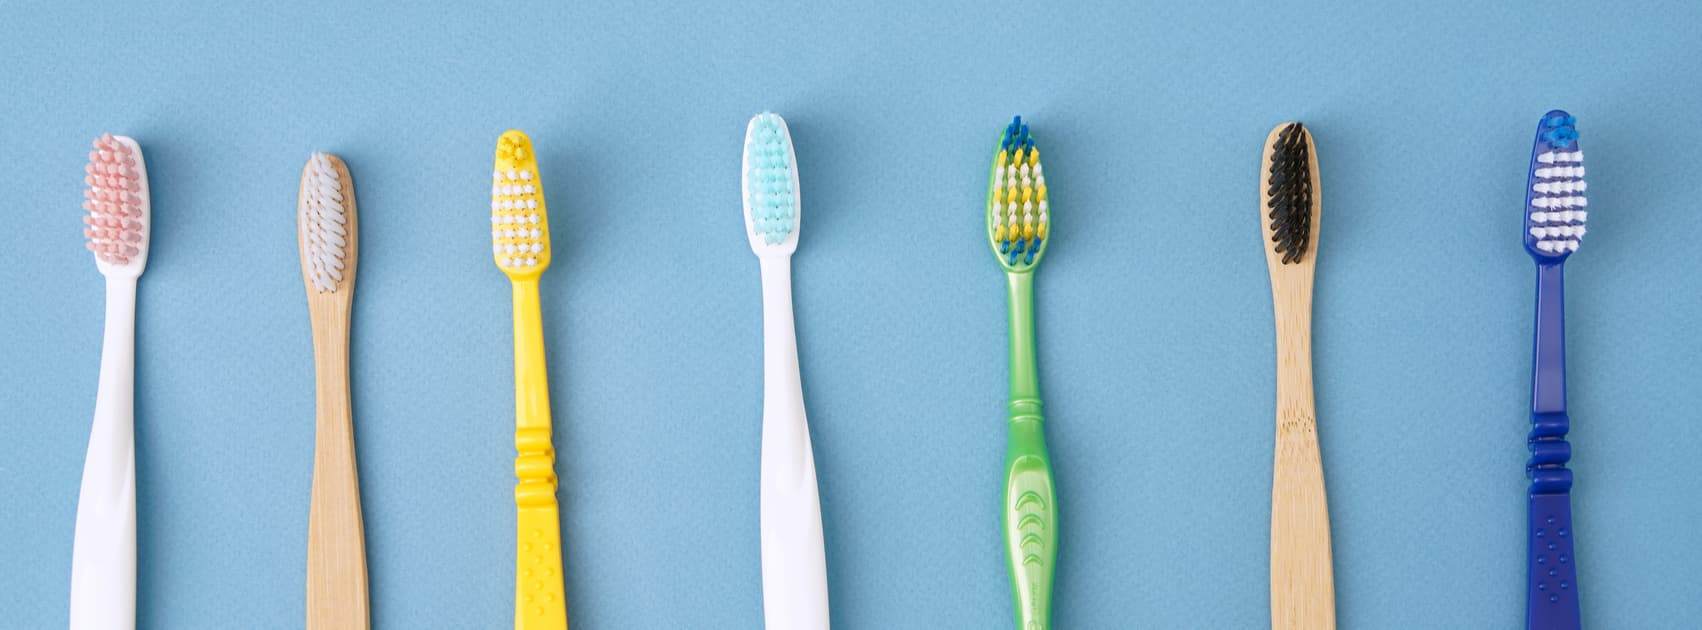 Soft vs Medium vs Hard Toothbrush -Which One Should You Use?